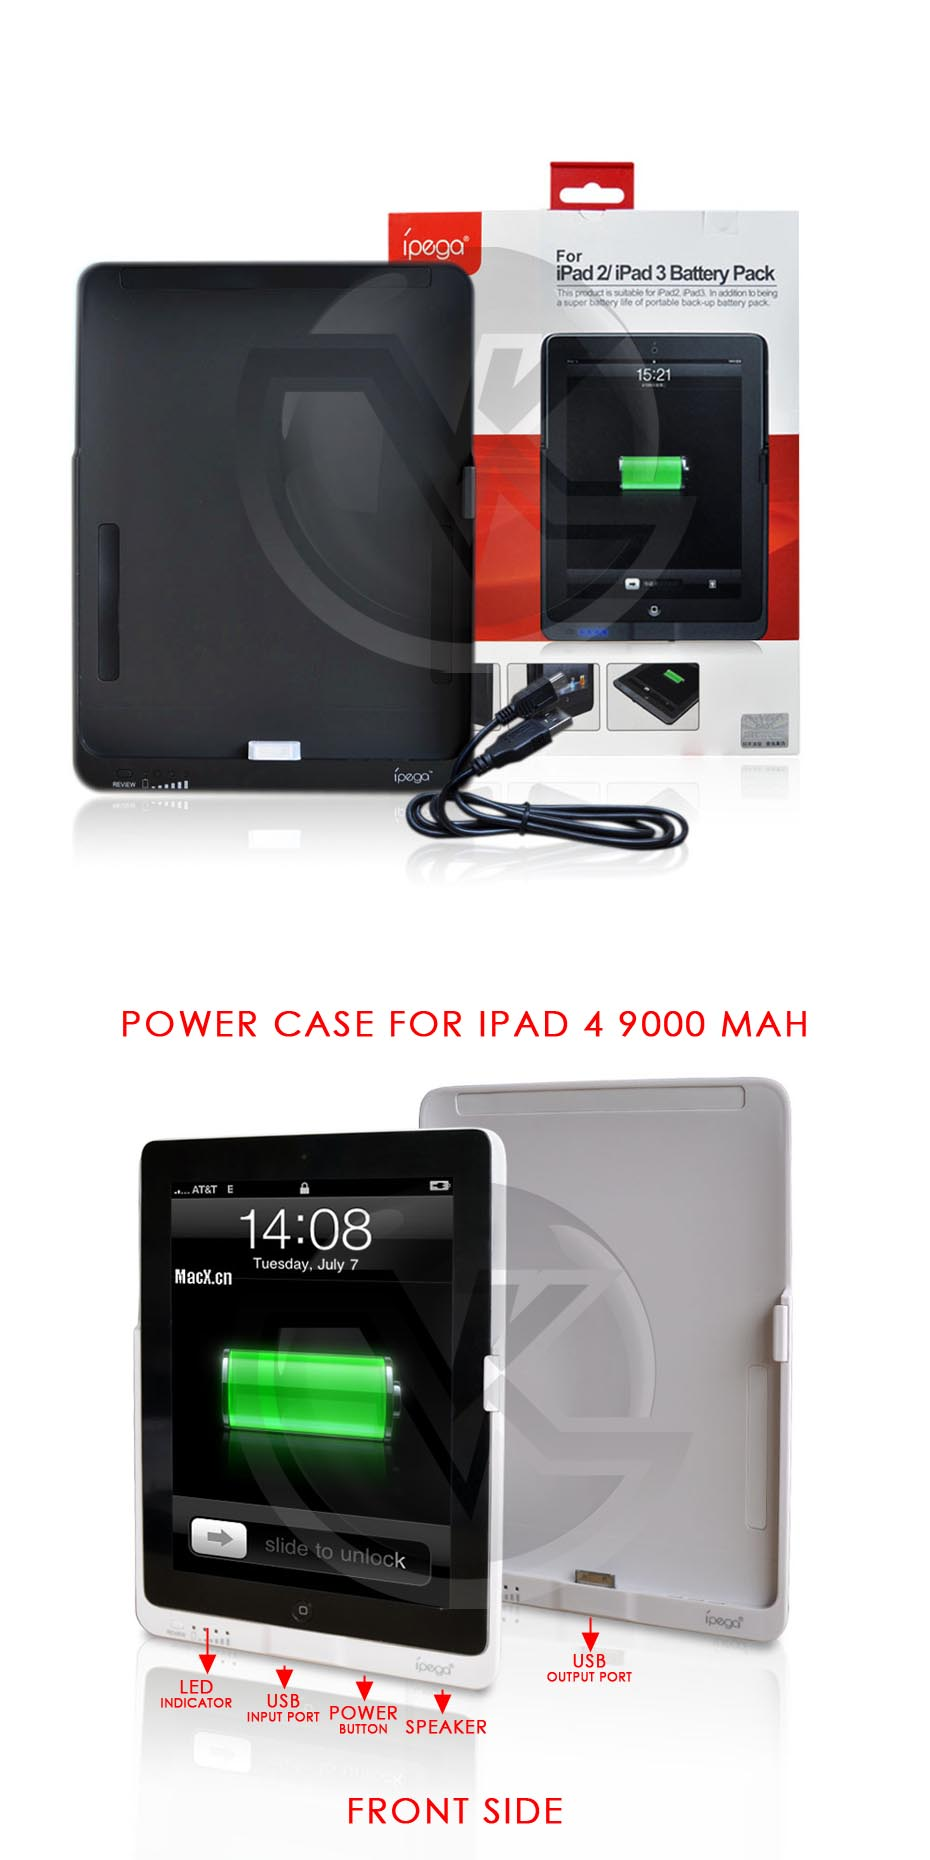 iPega Power Case for iPad 2, 3 9000mAh PG-IP118 Overview